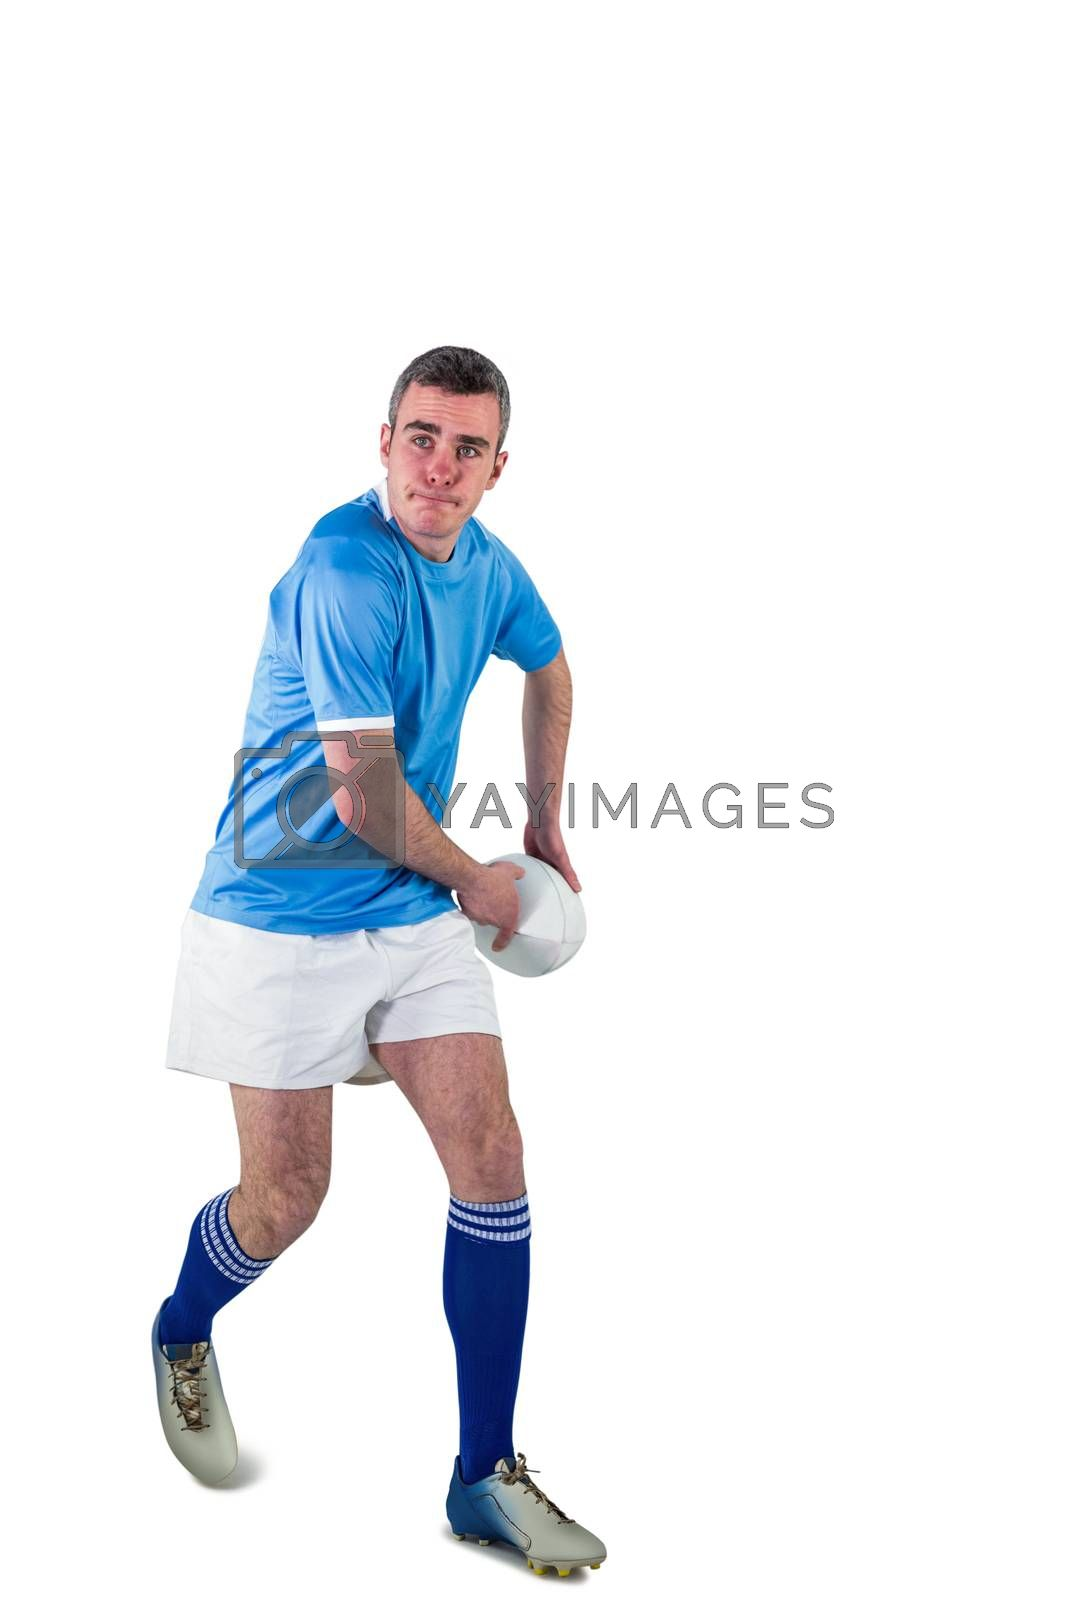 Royalty free image of Rugby player about to throw a rugby ball by Wavebreakmedia